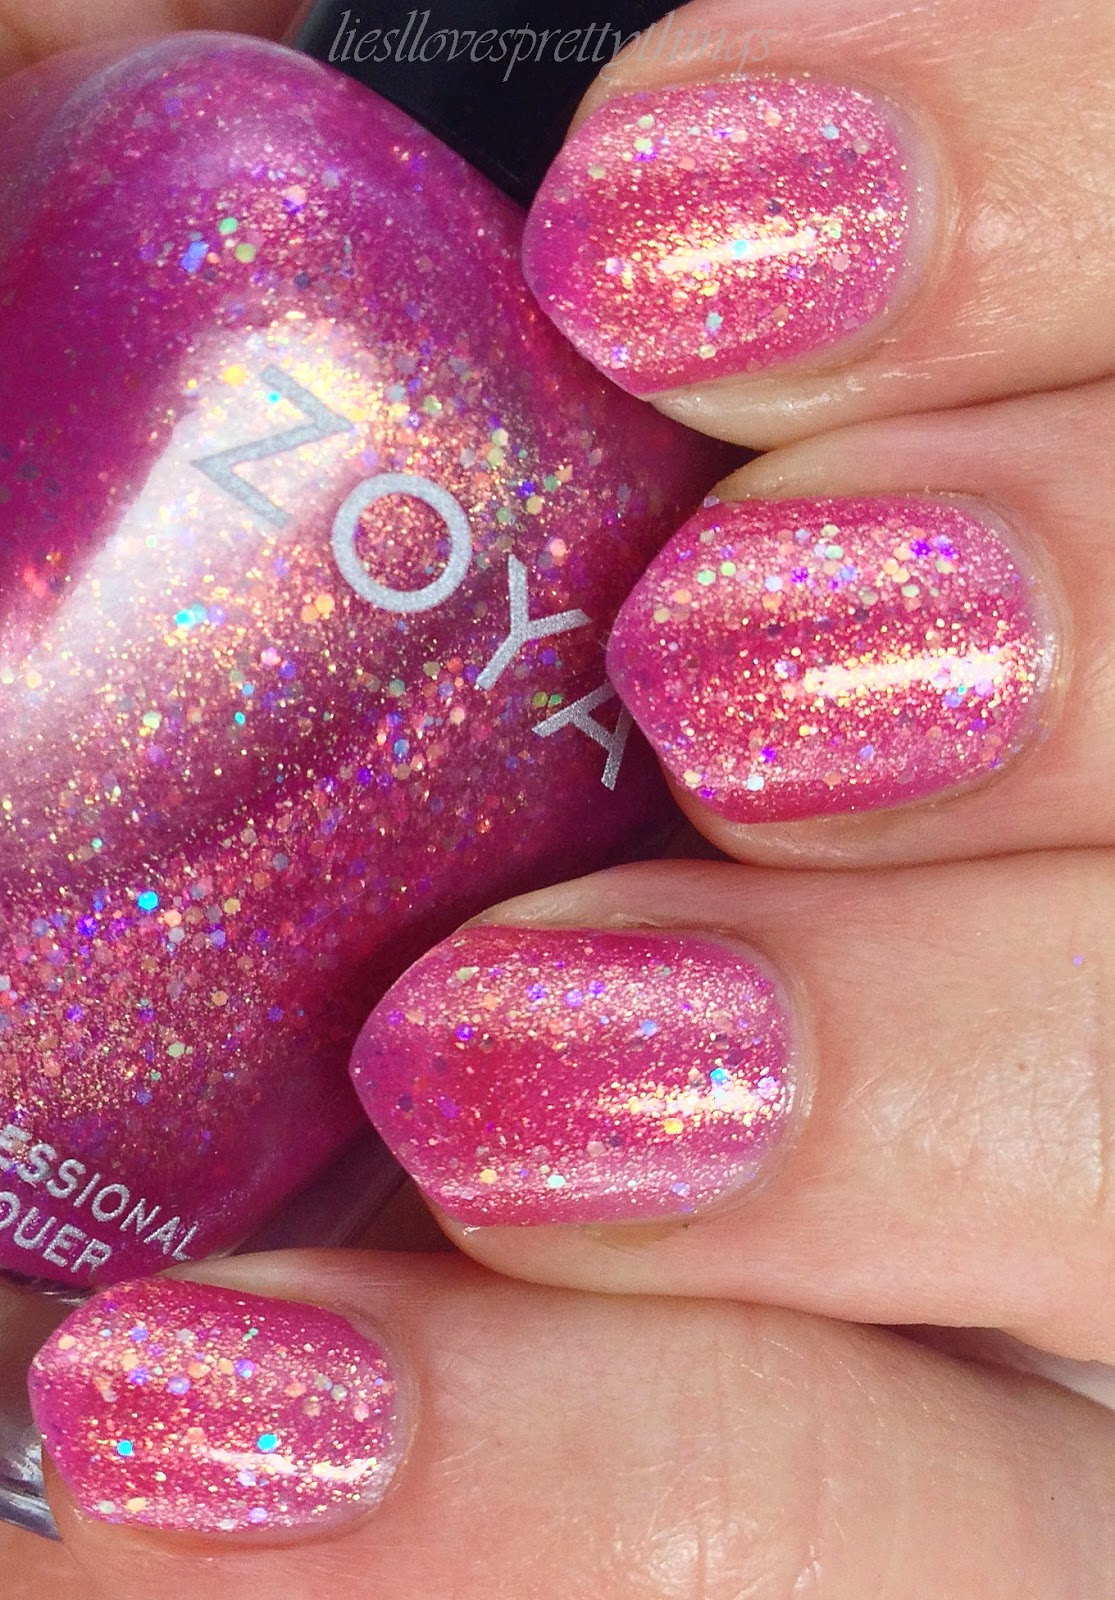 Zoya Binx swatch and review